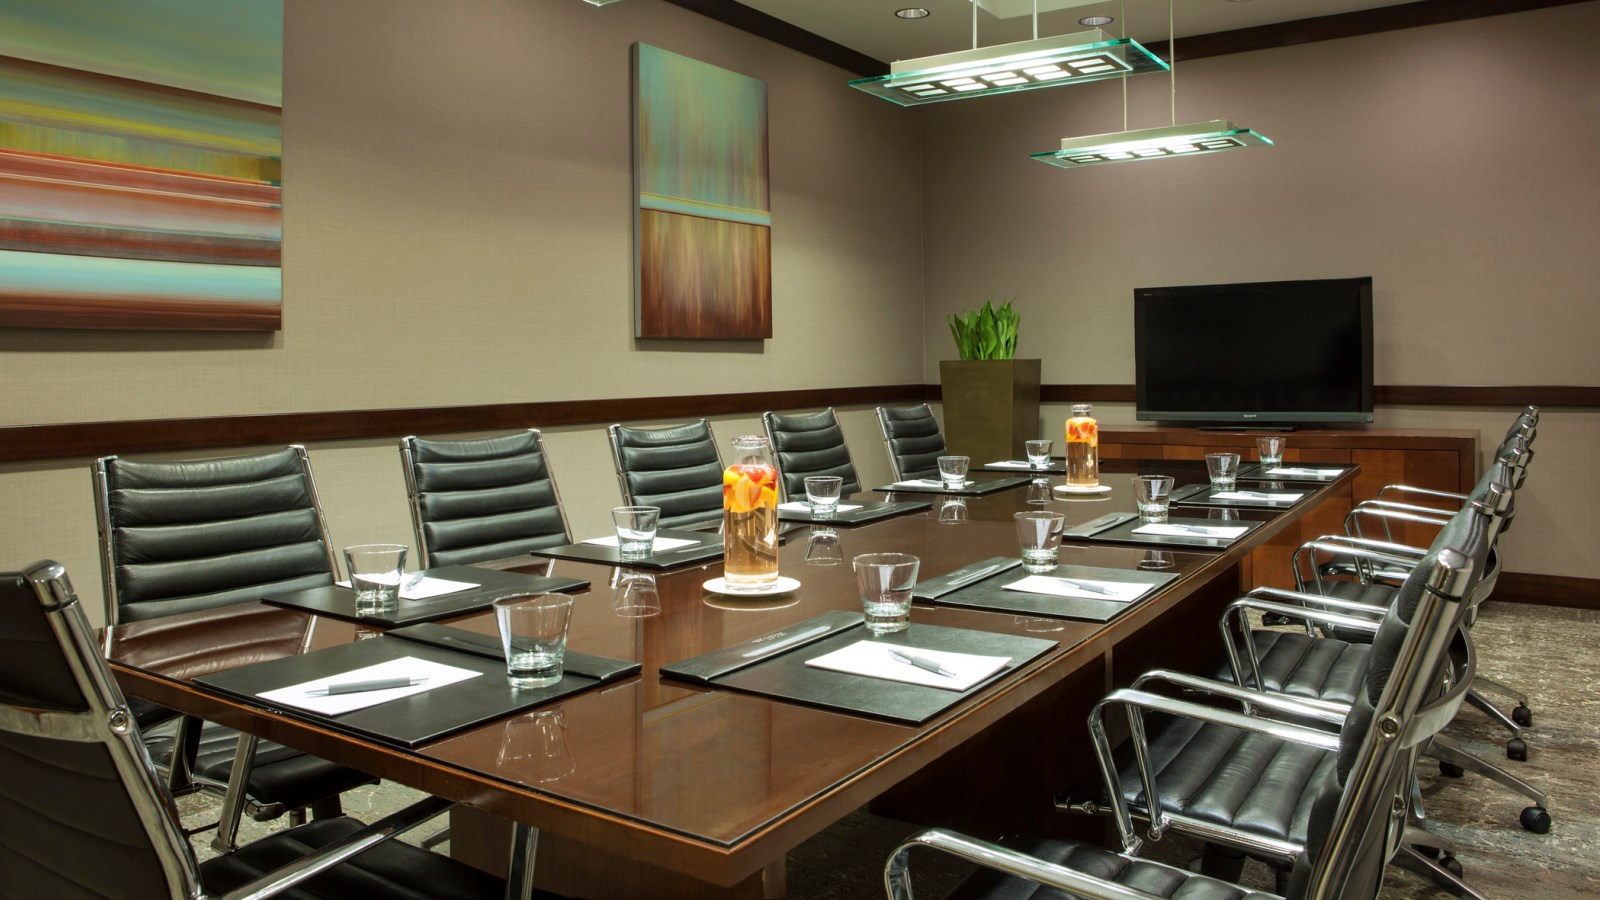 wes1993mf-188016-Reynolds-Executive-Boardroom.jpg